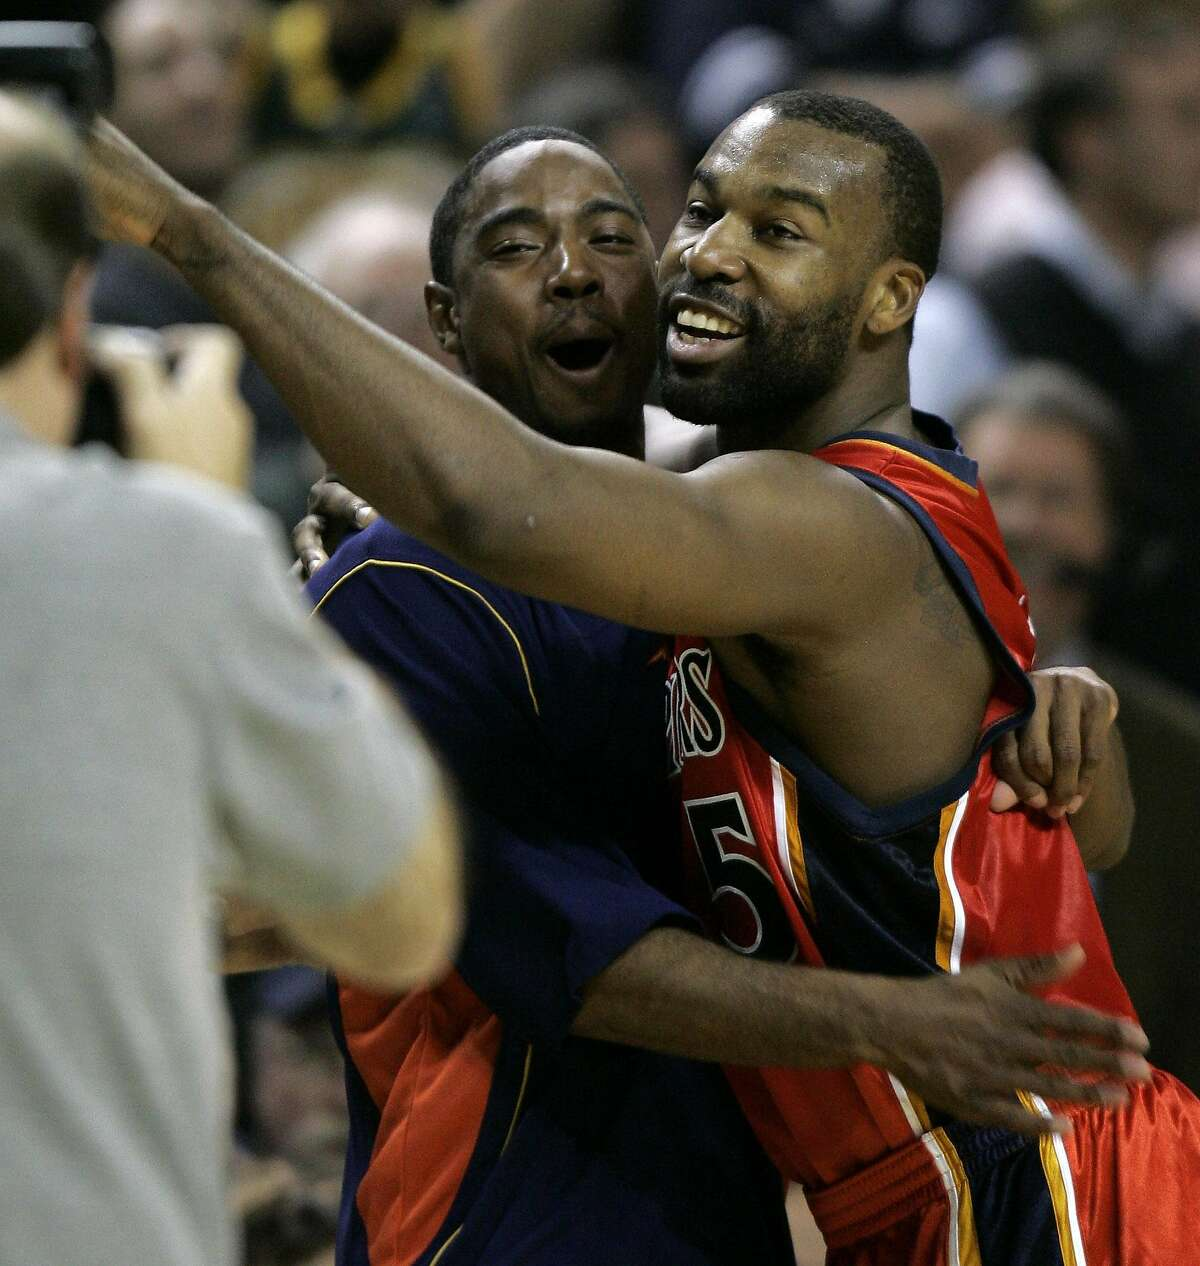 Golden State Warriors guard Baron Davis right, hugs an unidentified teammate after Davis hit the game-winning 3-pointer against the Seattle SuperSonics in overtime Tuesday, Dec. 13, 2005, in Seattle. The shot gave the Warriors a 110-107 win. (AP Photo/Ted S. Warren) Ran on: 12-14-2005 Baron Davis (right) gets a hug from teammate Aaron Miles.